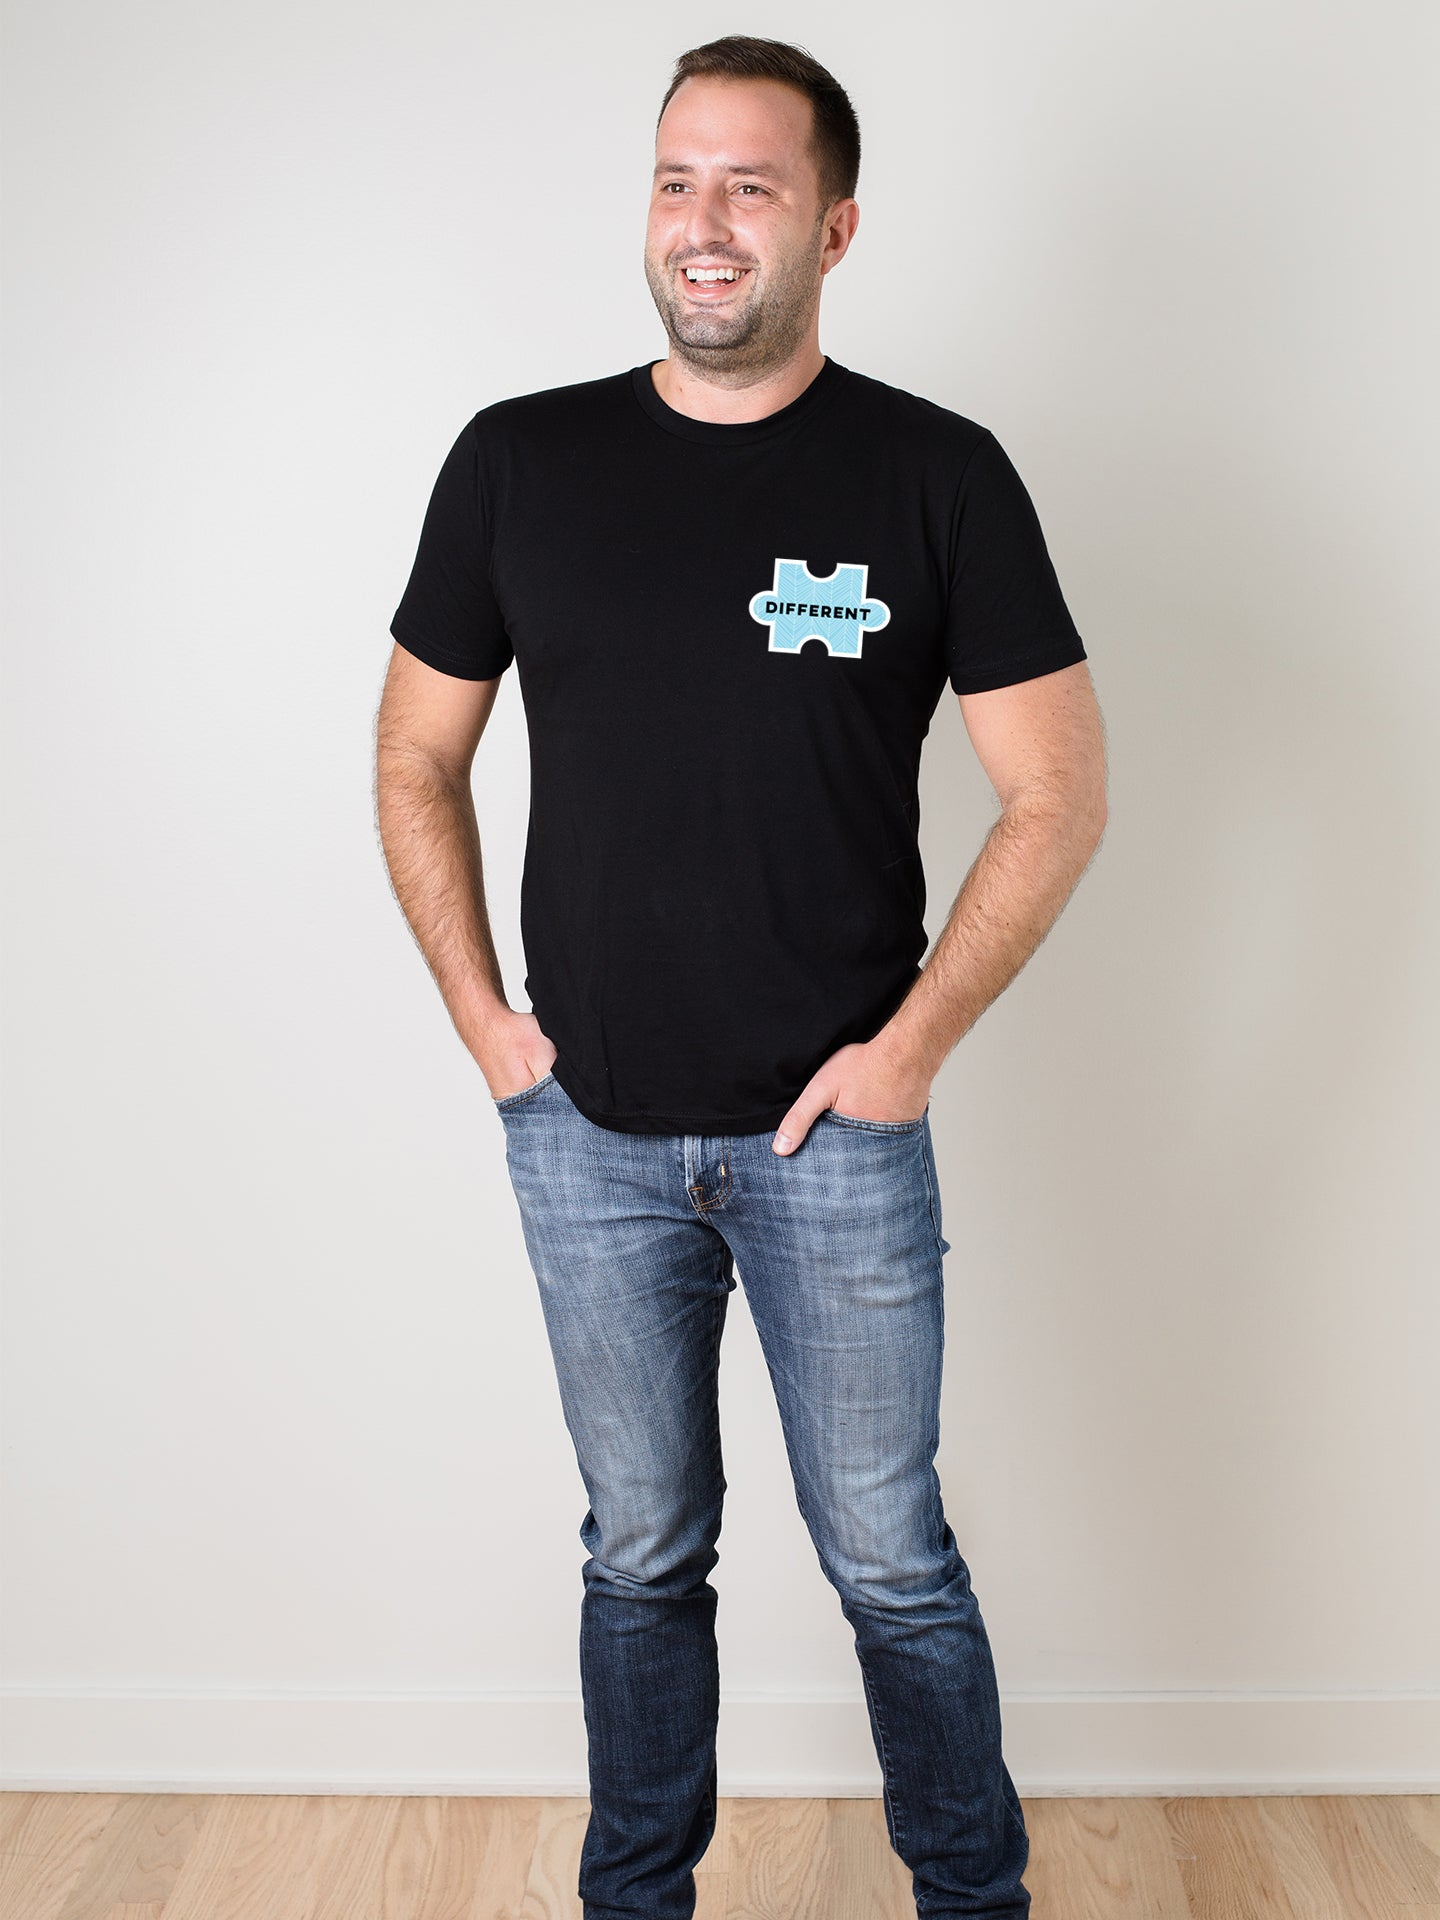 The Power of Words - Men's Tee - Puzzle Pieces - DIFFERENT